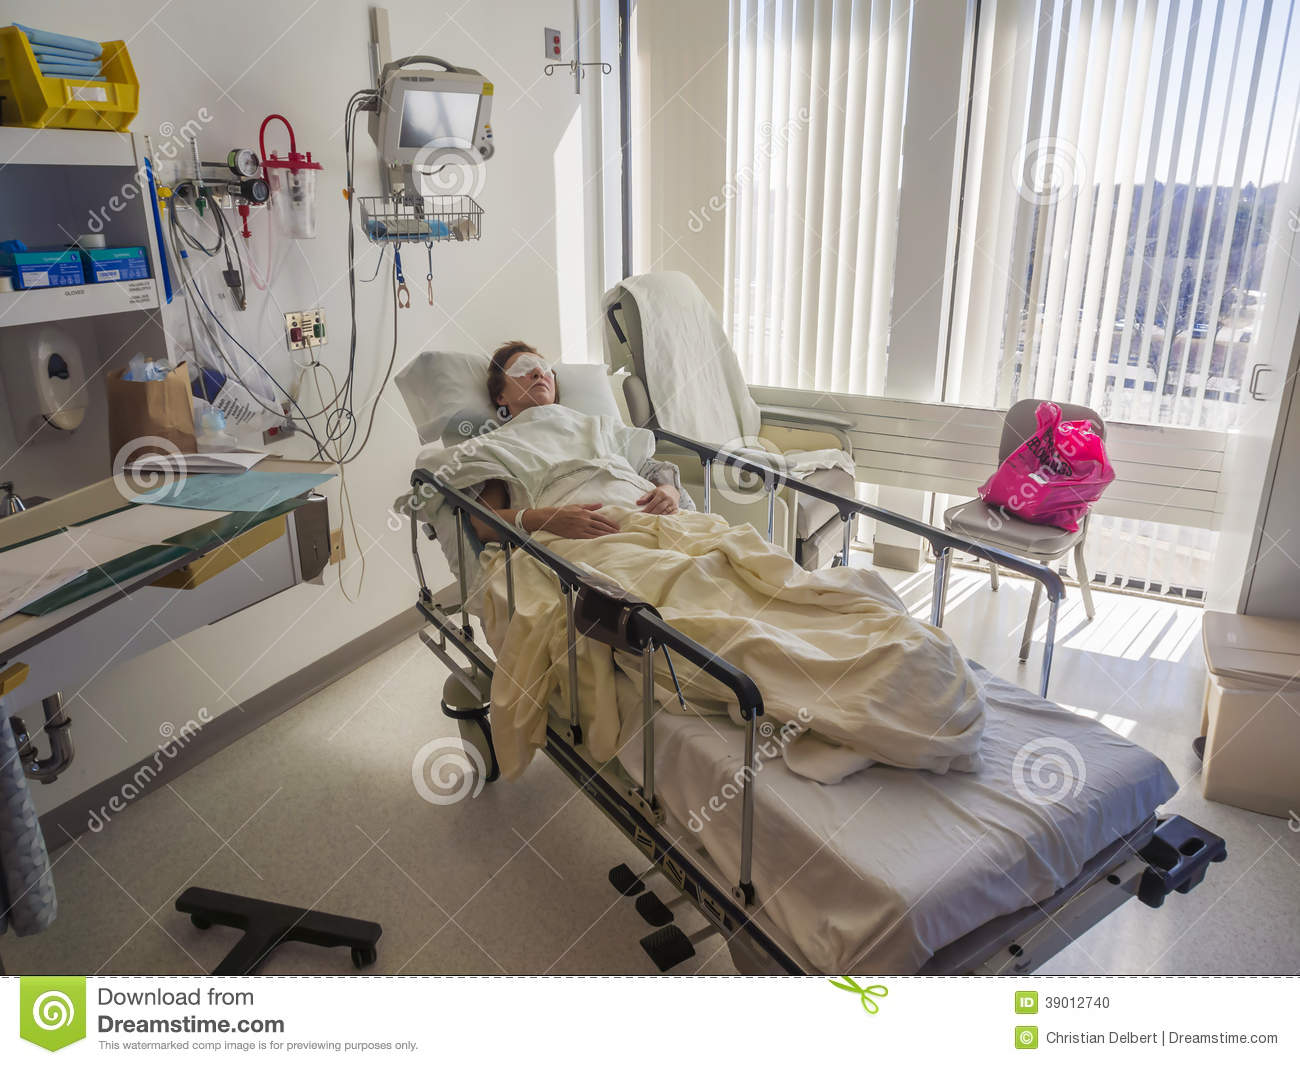 Chambre d 39 h pital et patient photo stock image 39012740 for Pas de chambre 13 hopital